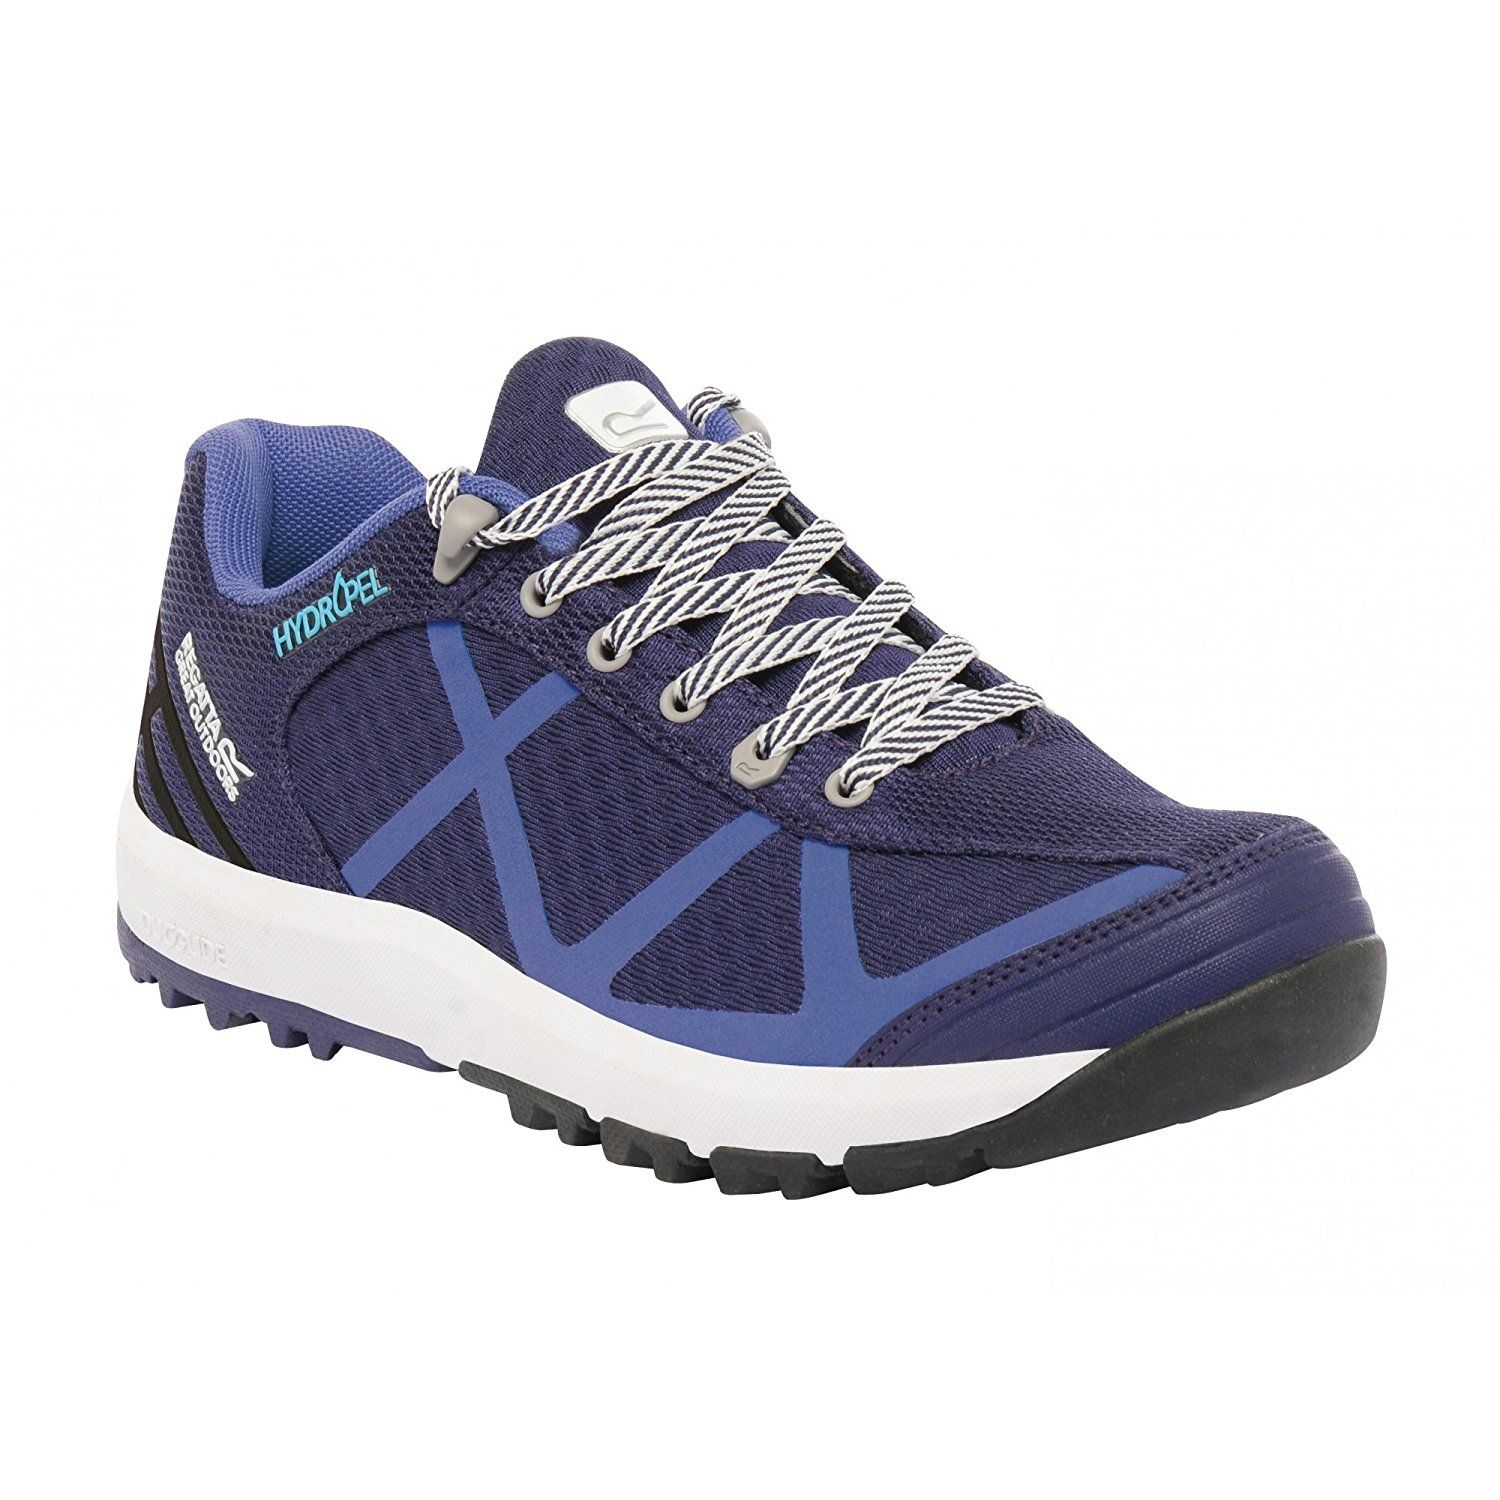 Regatta womens Regatta Ladies Lady Hyper-Trail Low Light Breathable Walking Shoes Polyester *** Click image to review more details.